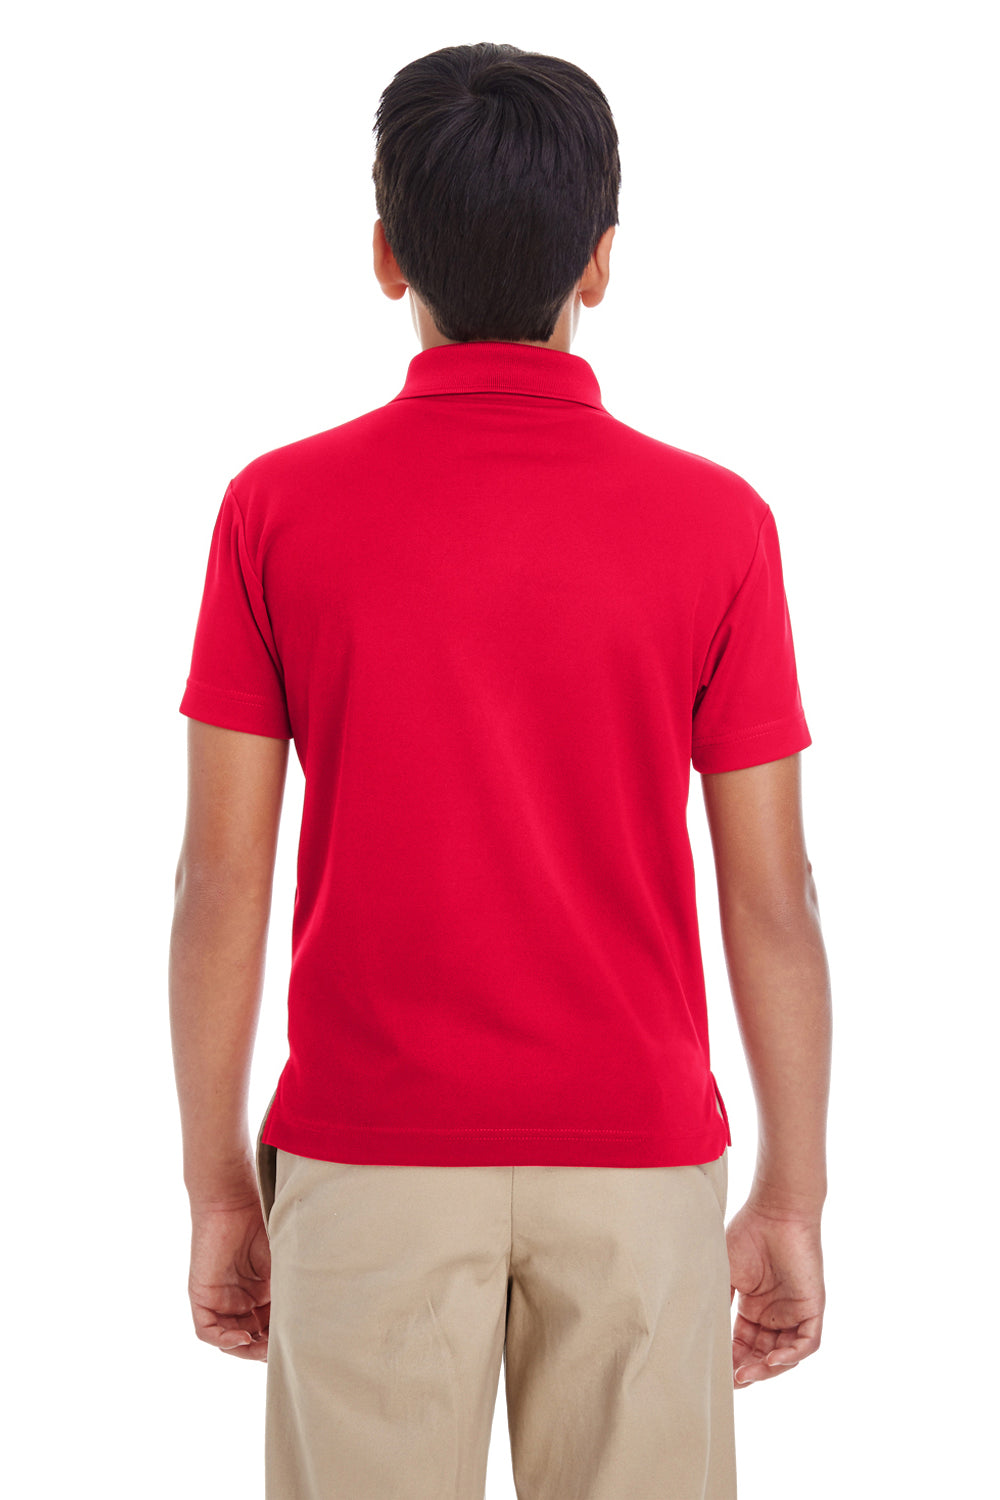 Core 365 88181Y Youth Origin Performance Moisture Wicking Short Sleeve Polo Shirt Red Back